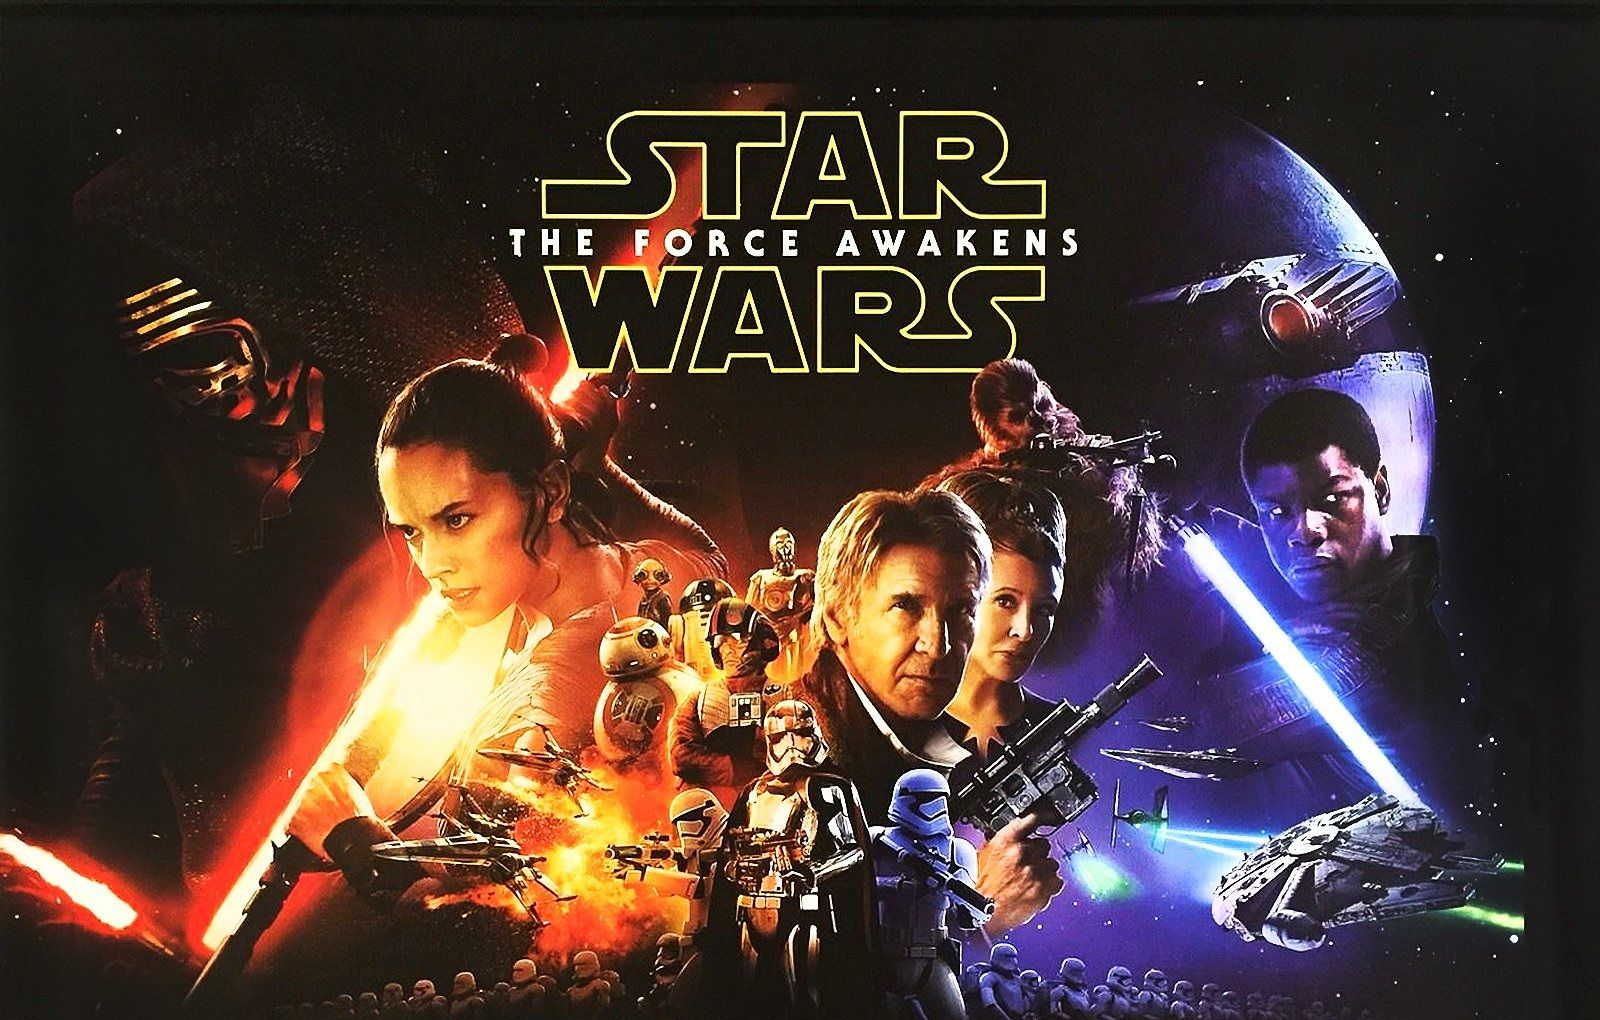 The Force Awakens Wallpapers Top Free The Force Awakens